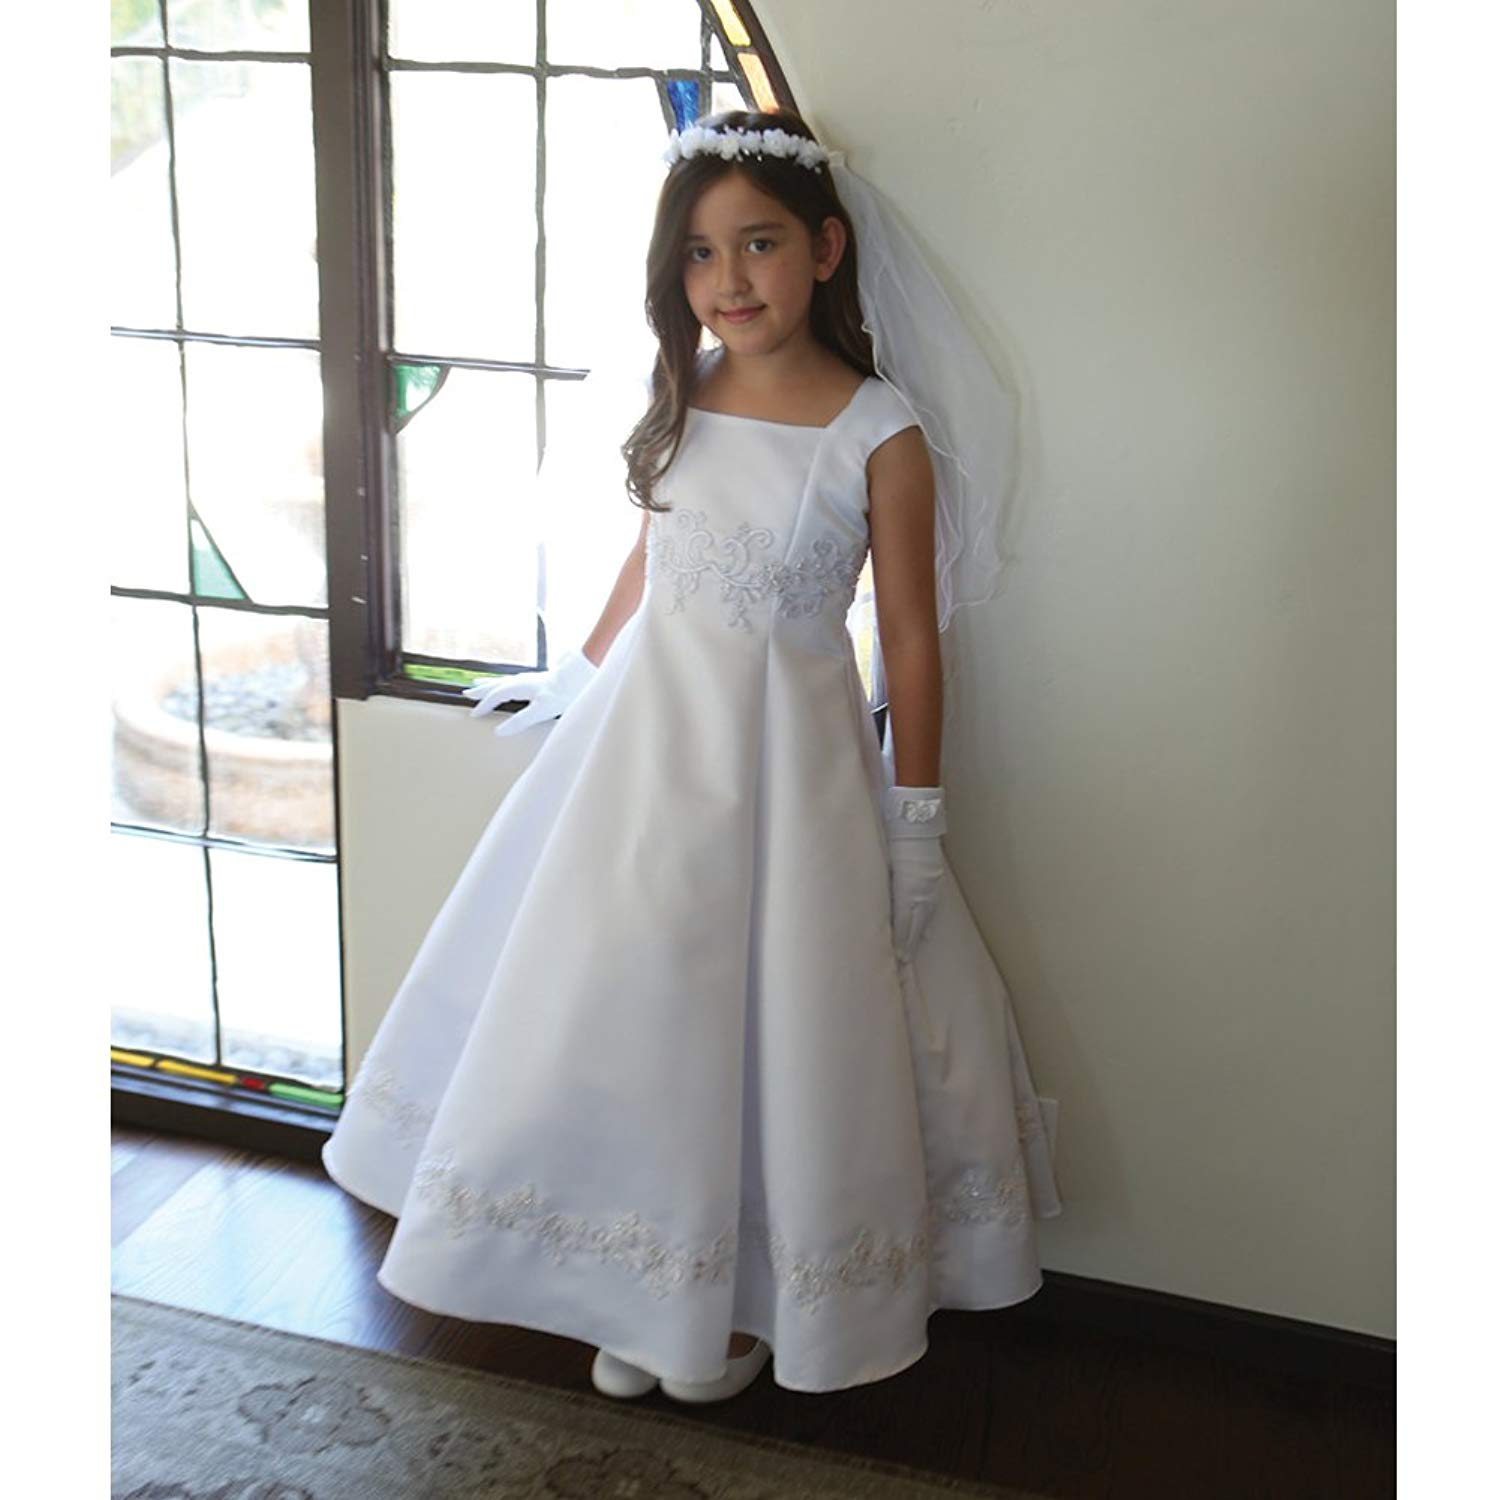 Angels Garment Big Girls White Embroidered Appliques Communion Dress 7-18